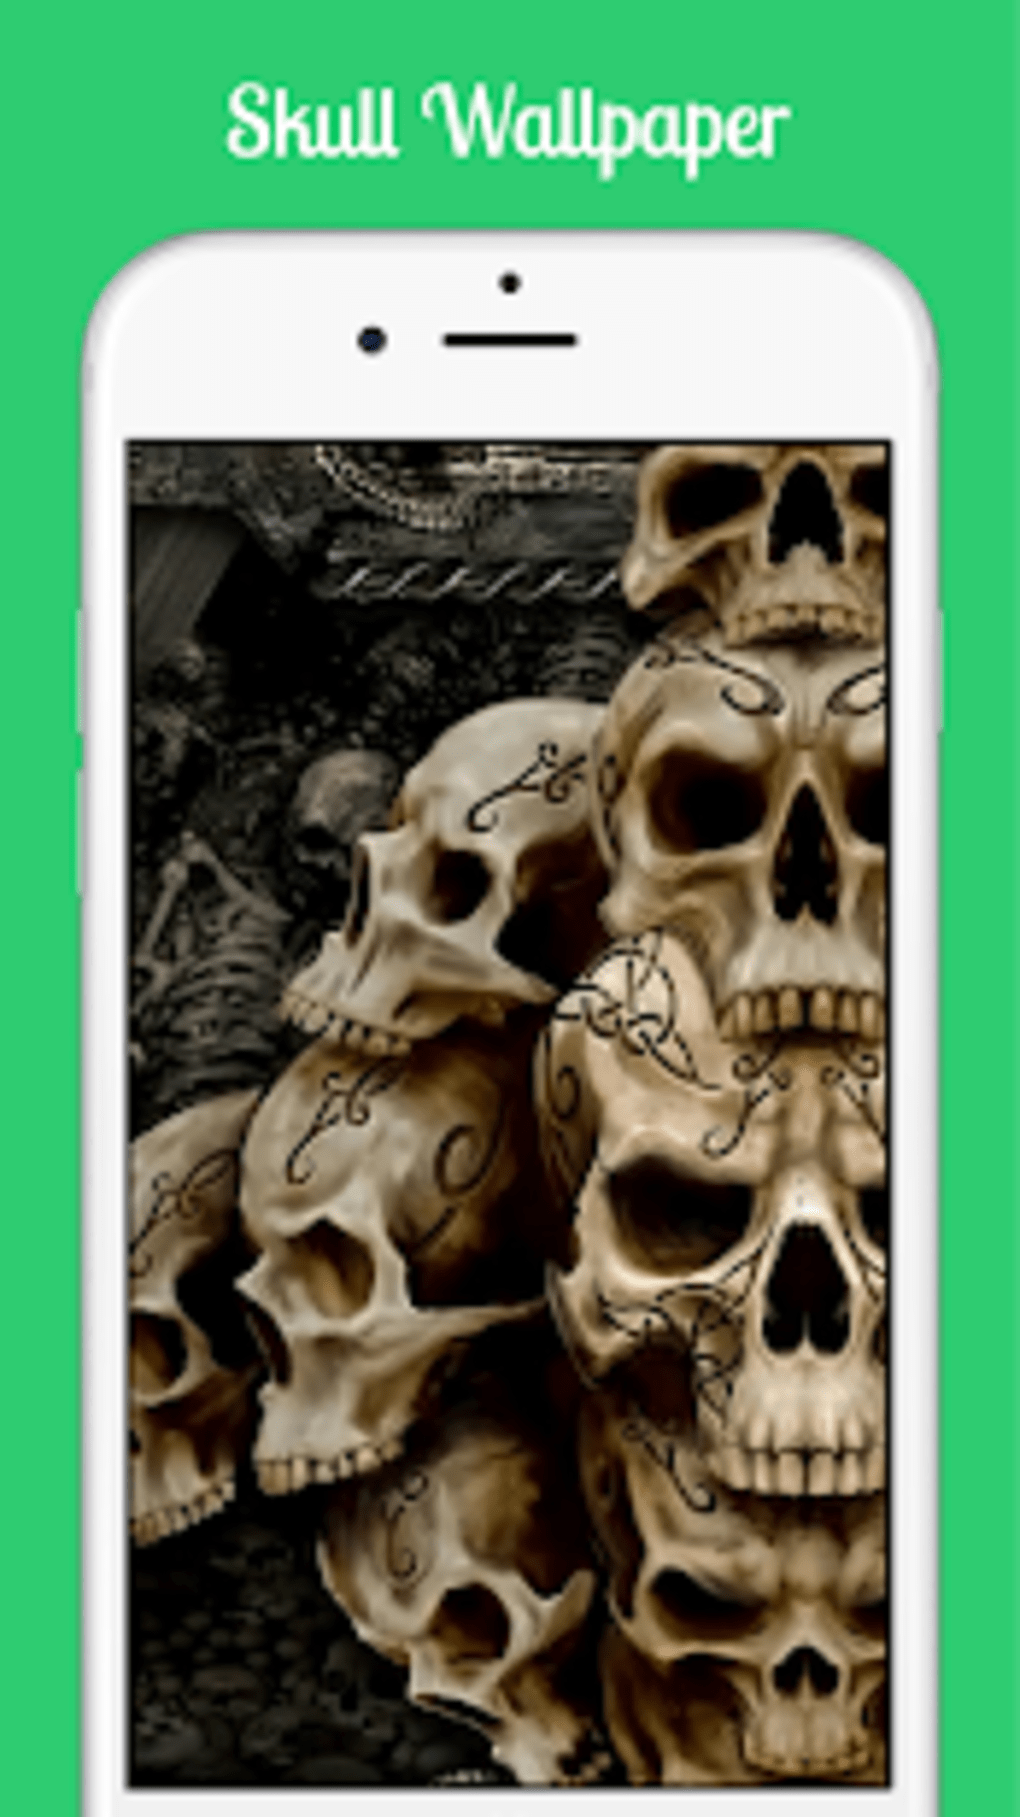 Skull Wallpaper APK for Android - Download